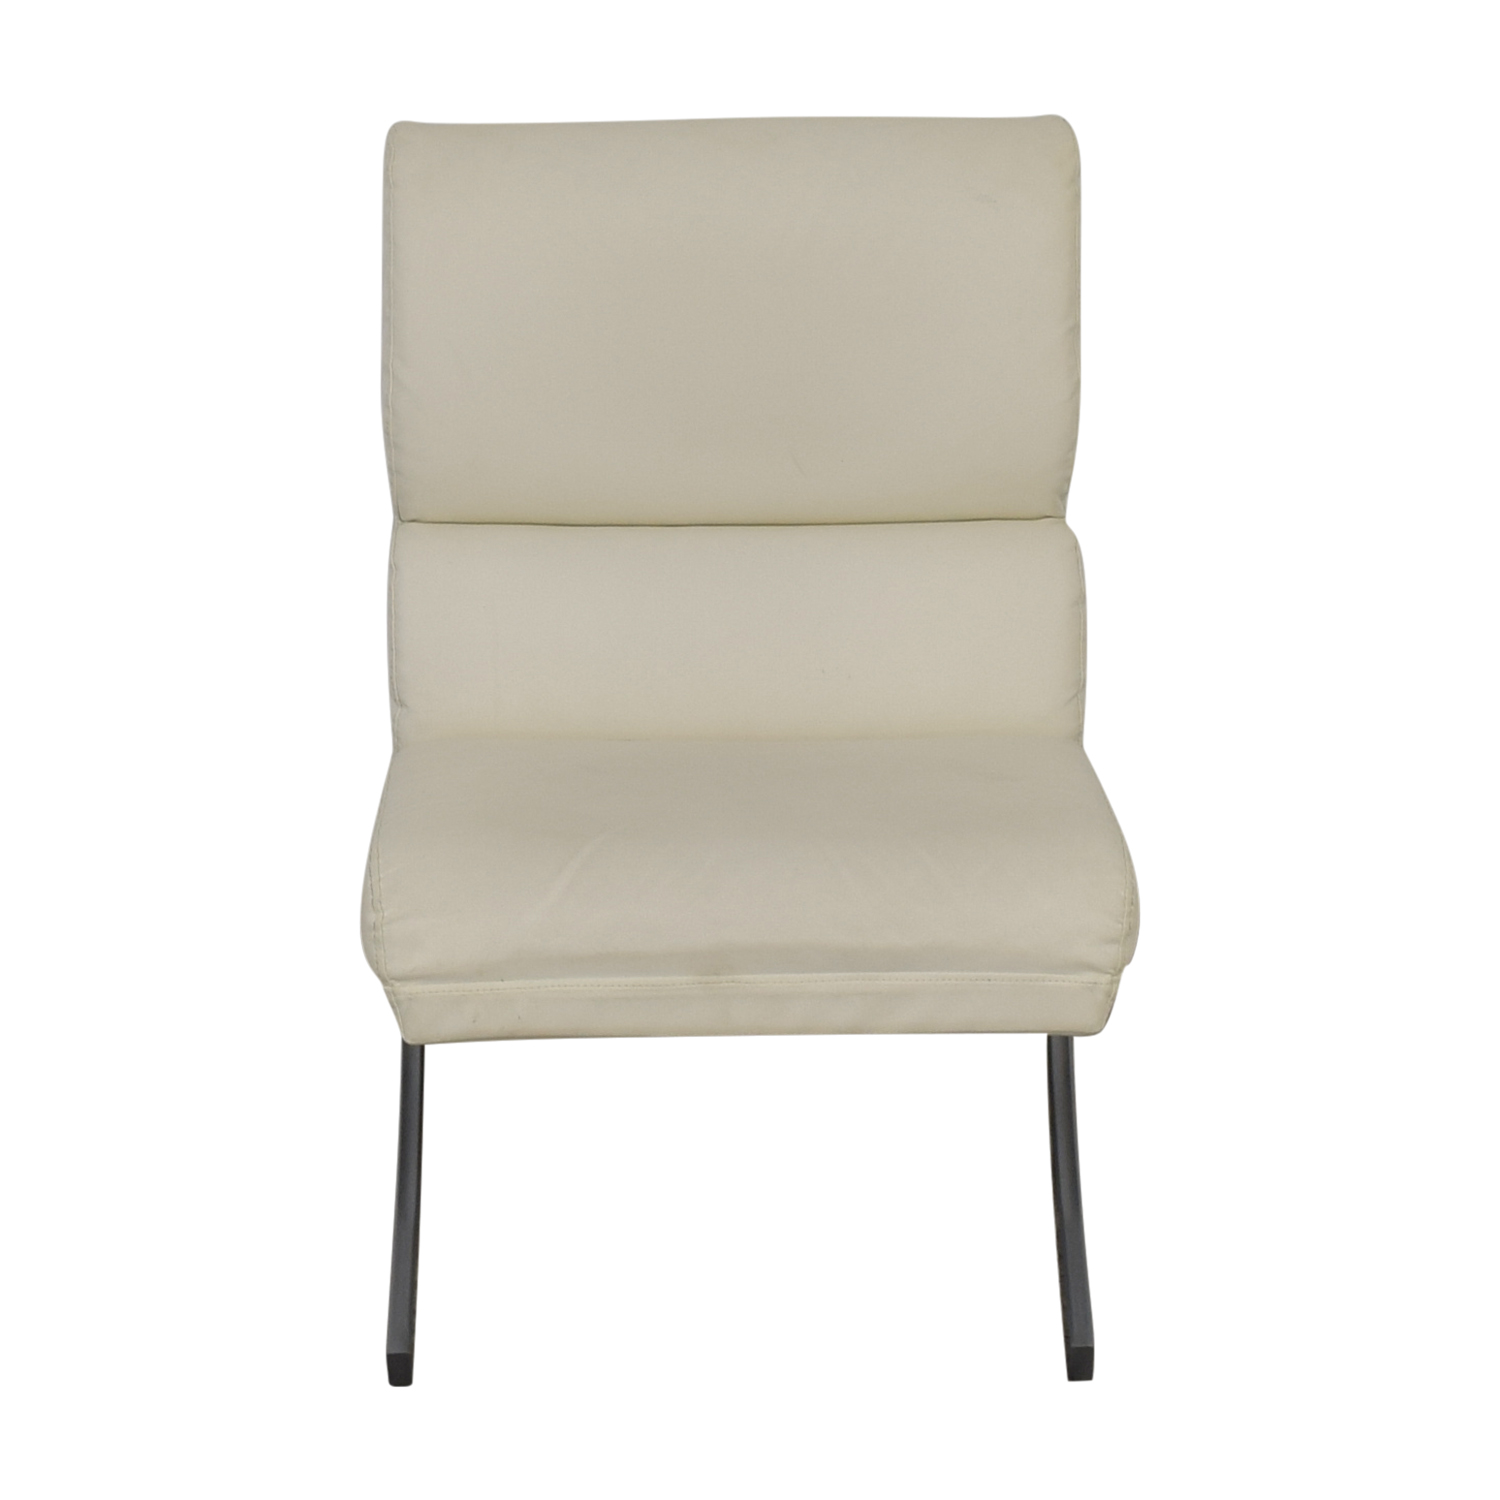 Off White Accent Chair 86 Off Dimensions Dimensions White Leather Accent Chair